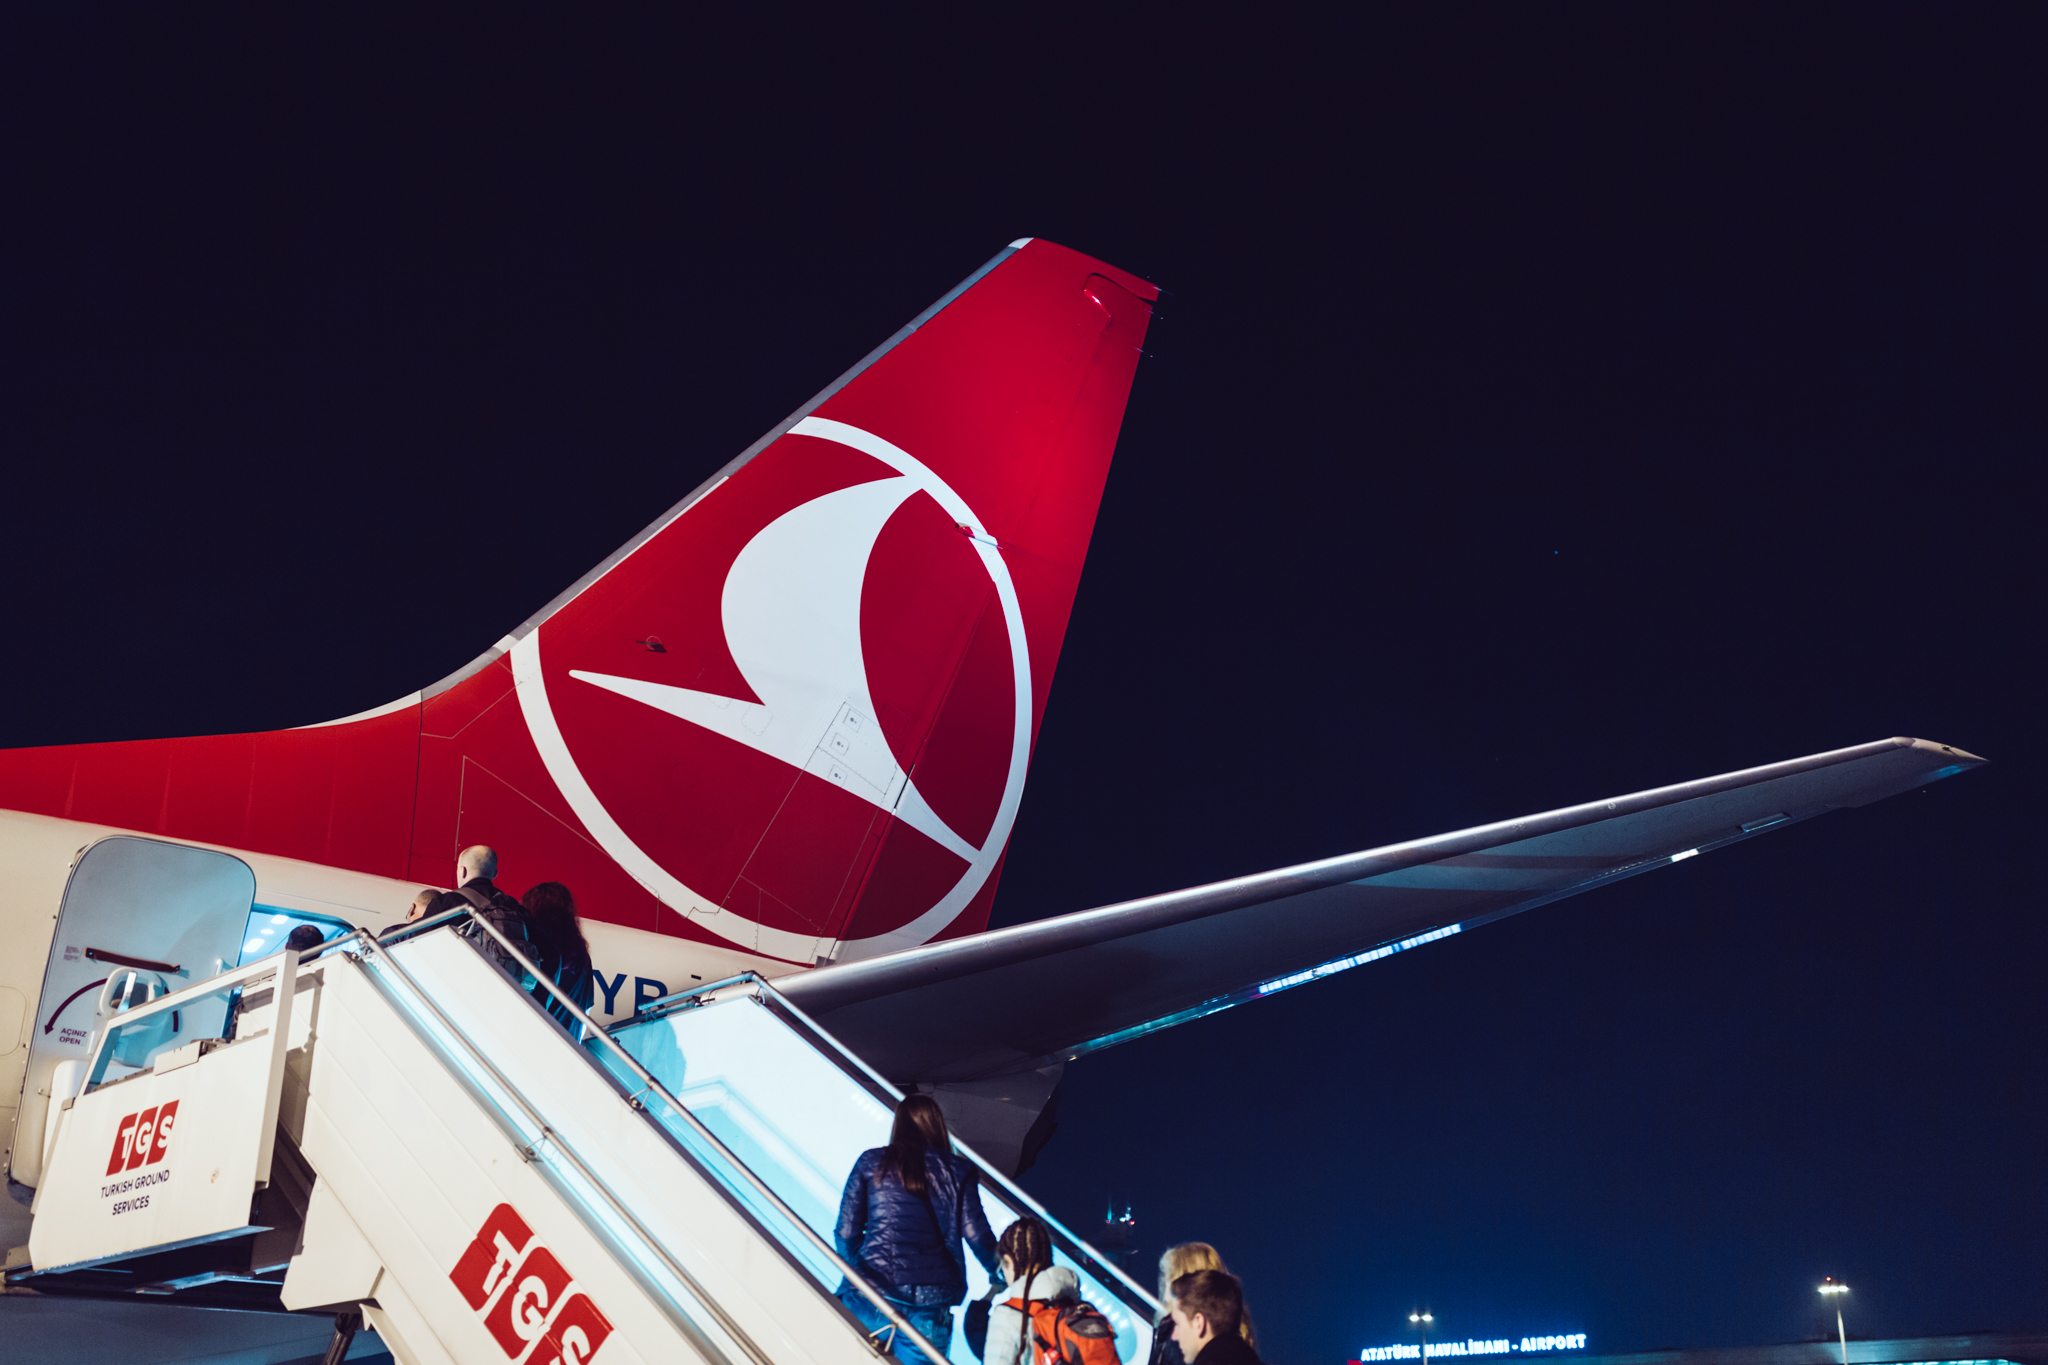 Turkish Airlines 45